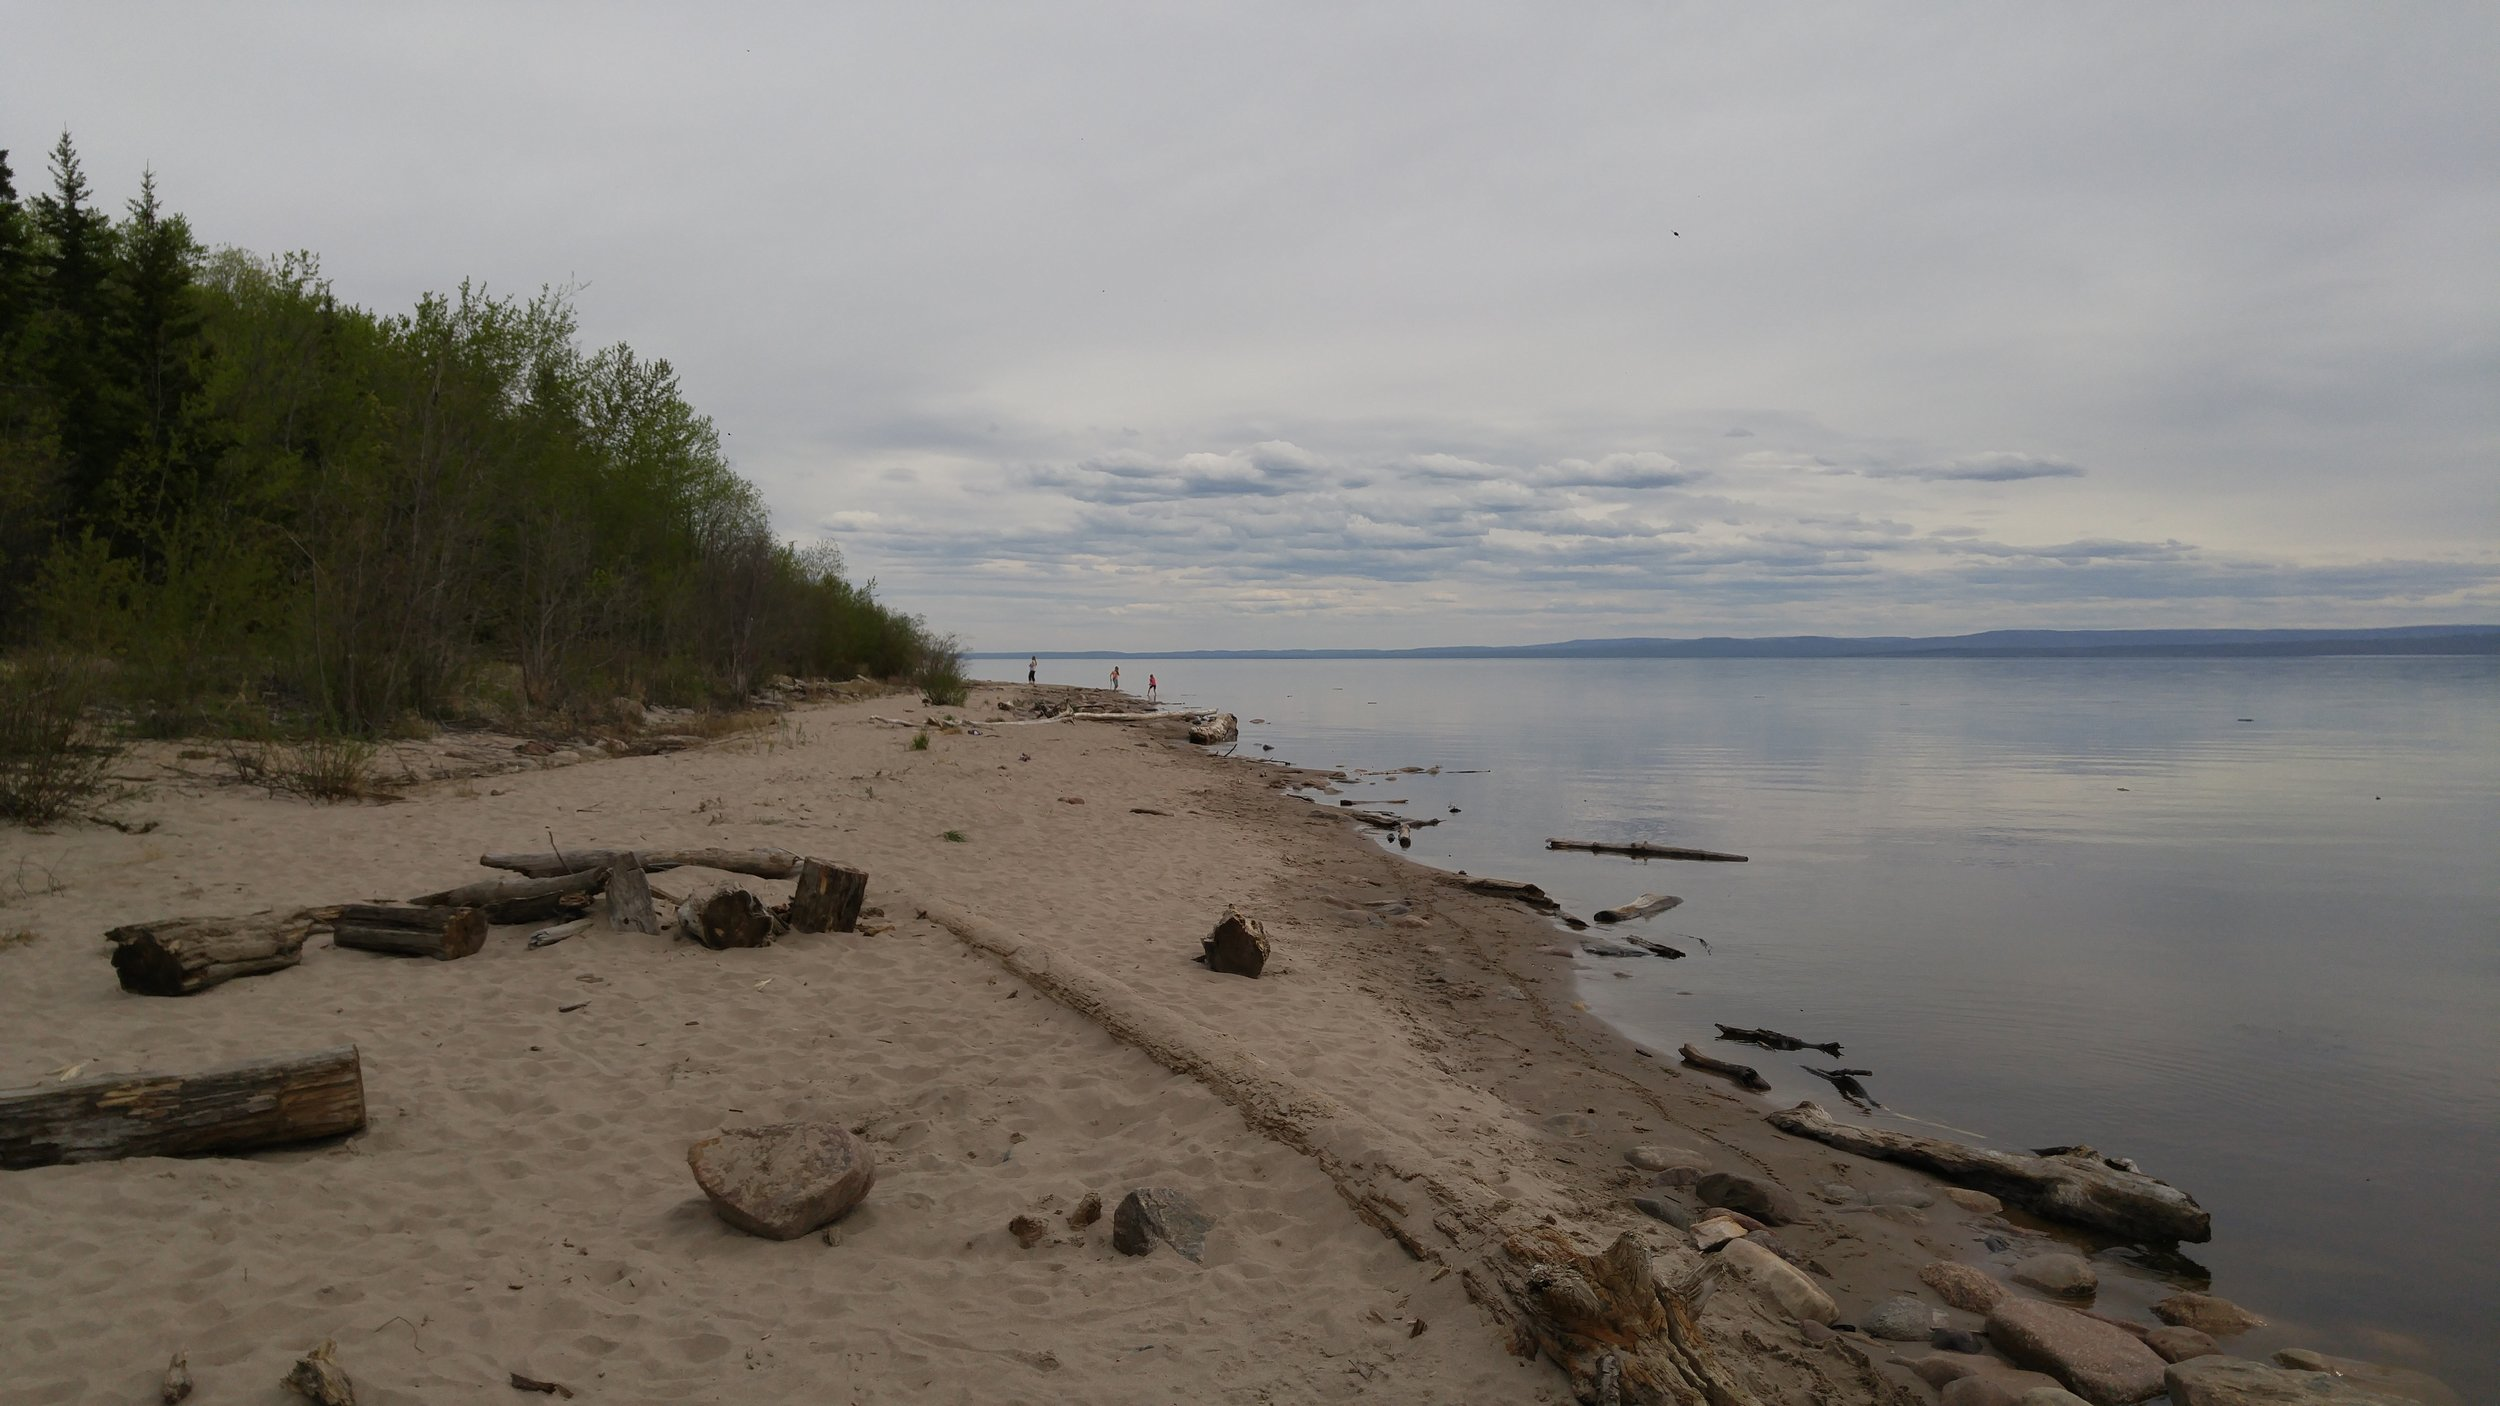 Above: Beach at Lesser Slave Lake, AB where RFR broadcast received